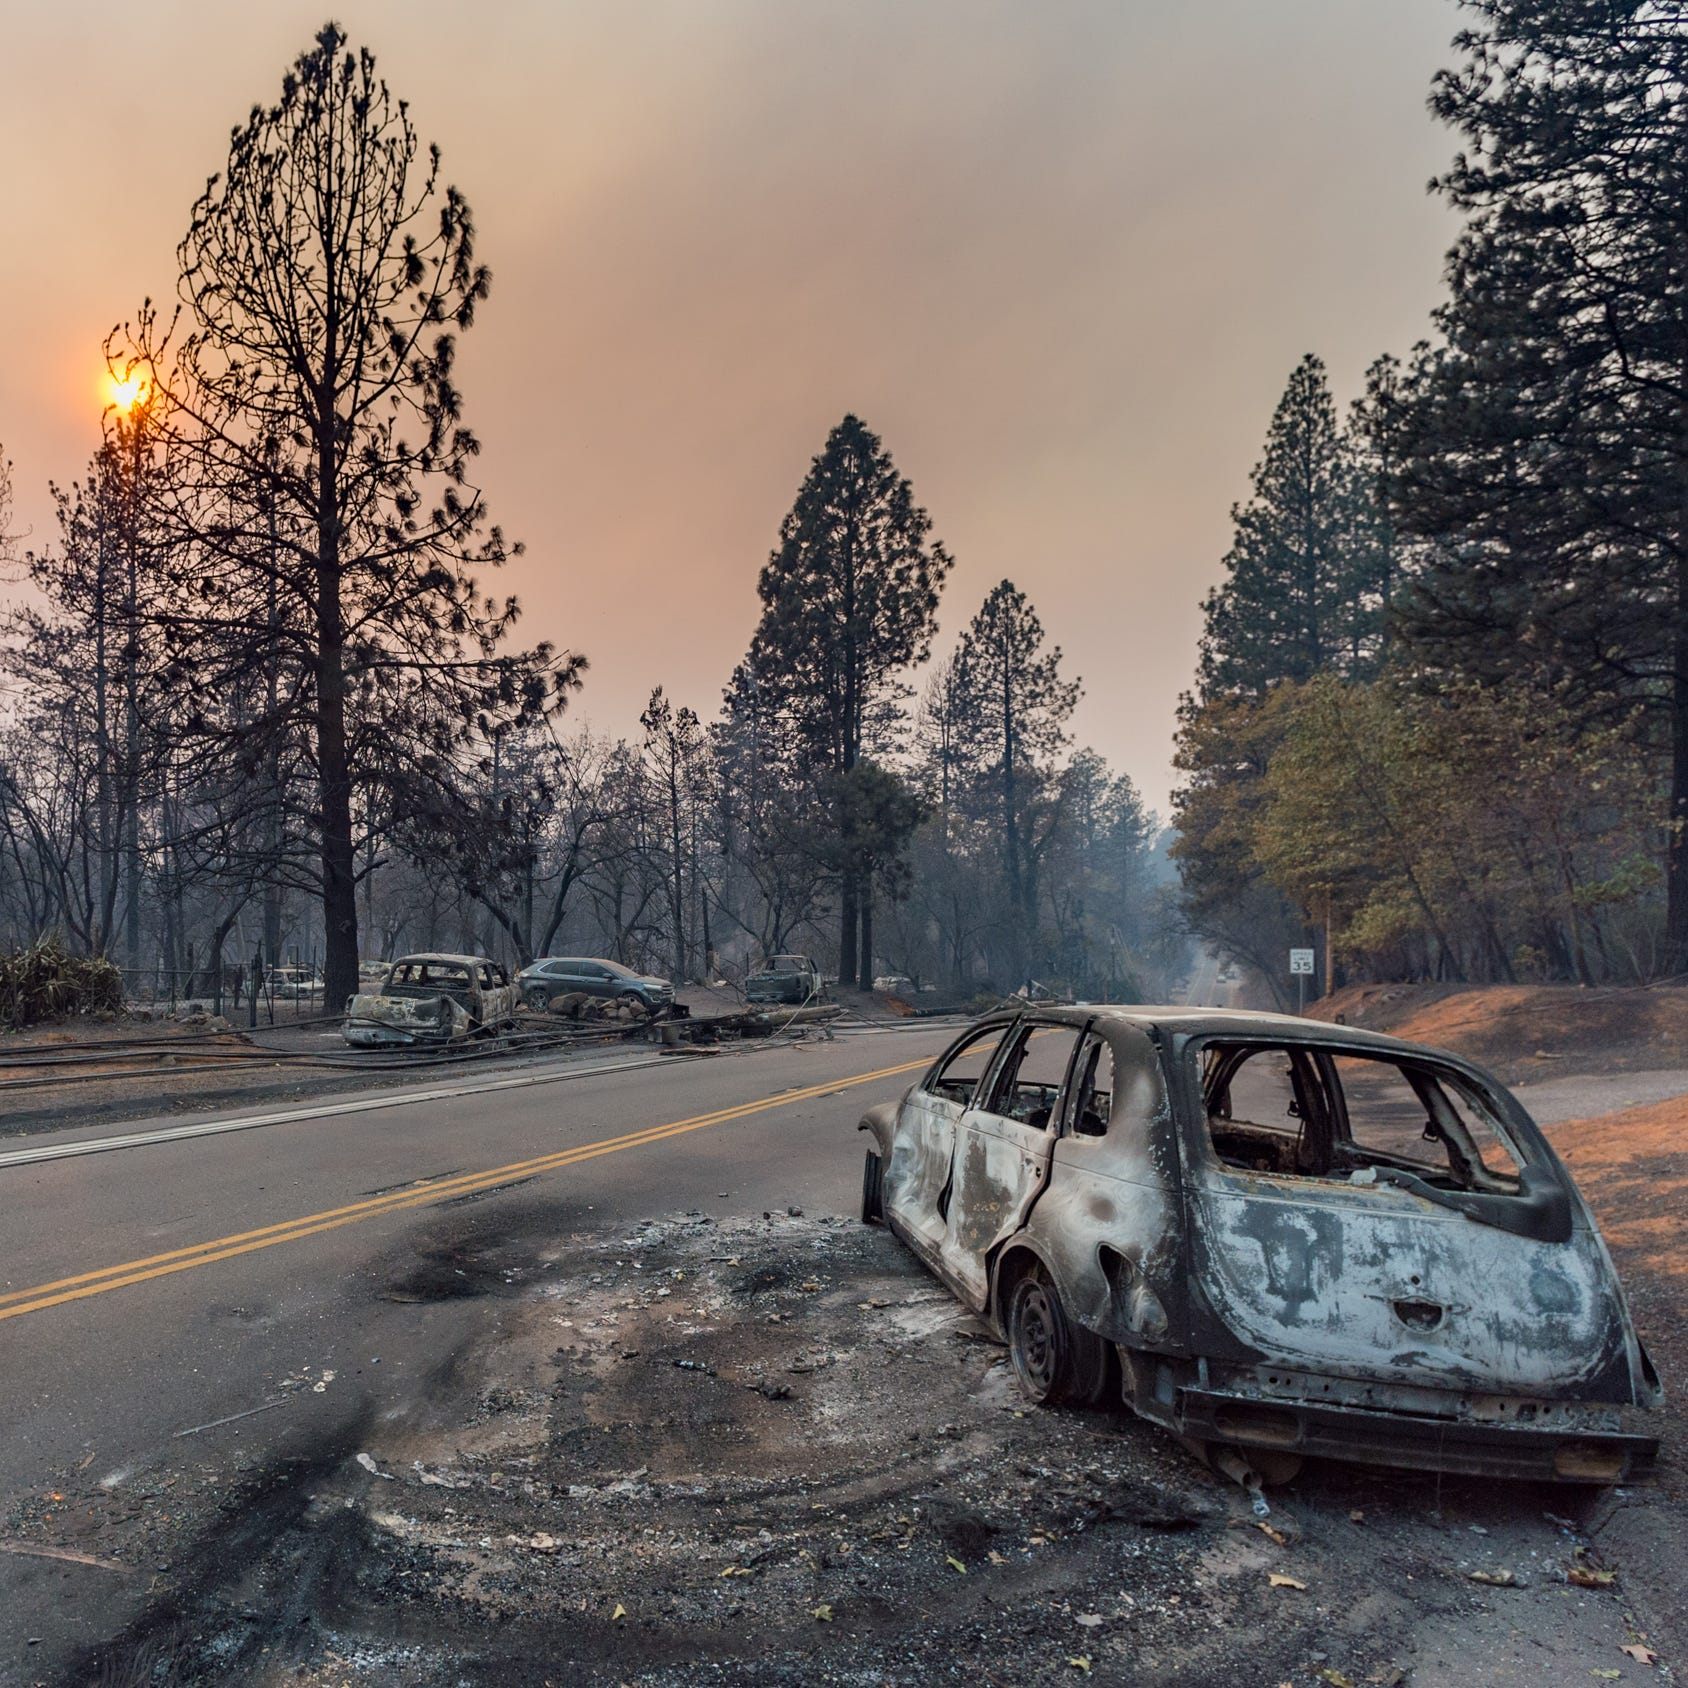 Camp Fire death toll reaches 29, equals deadliest wildfire in California history